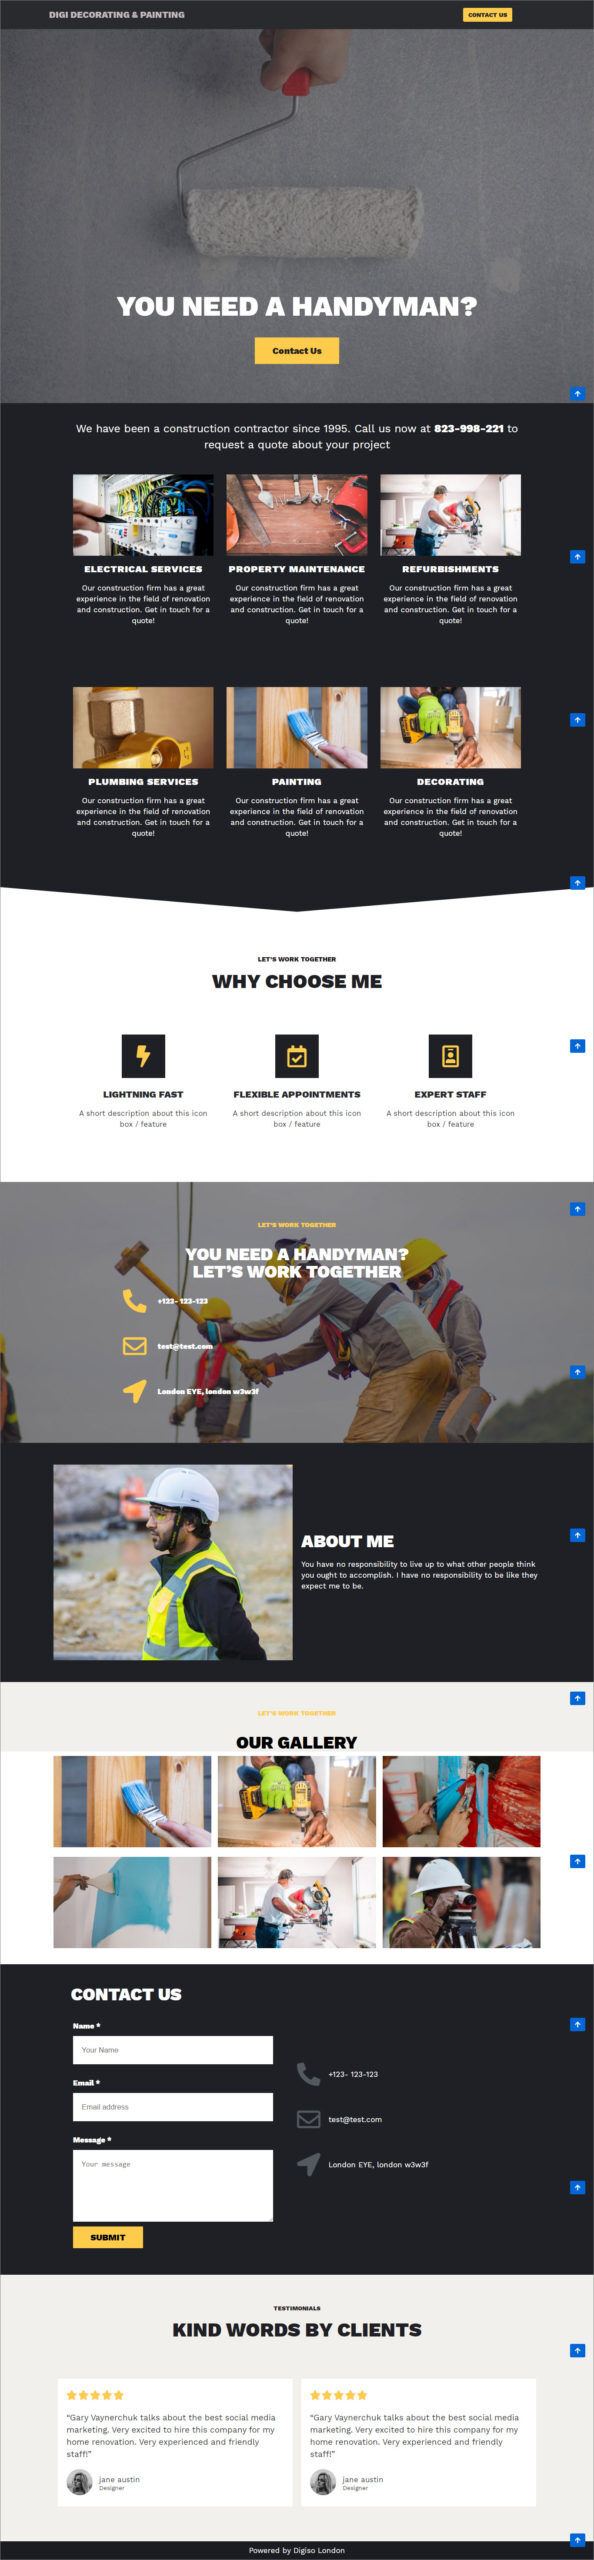 Website For Decorating Business